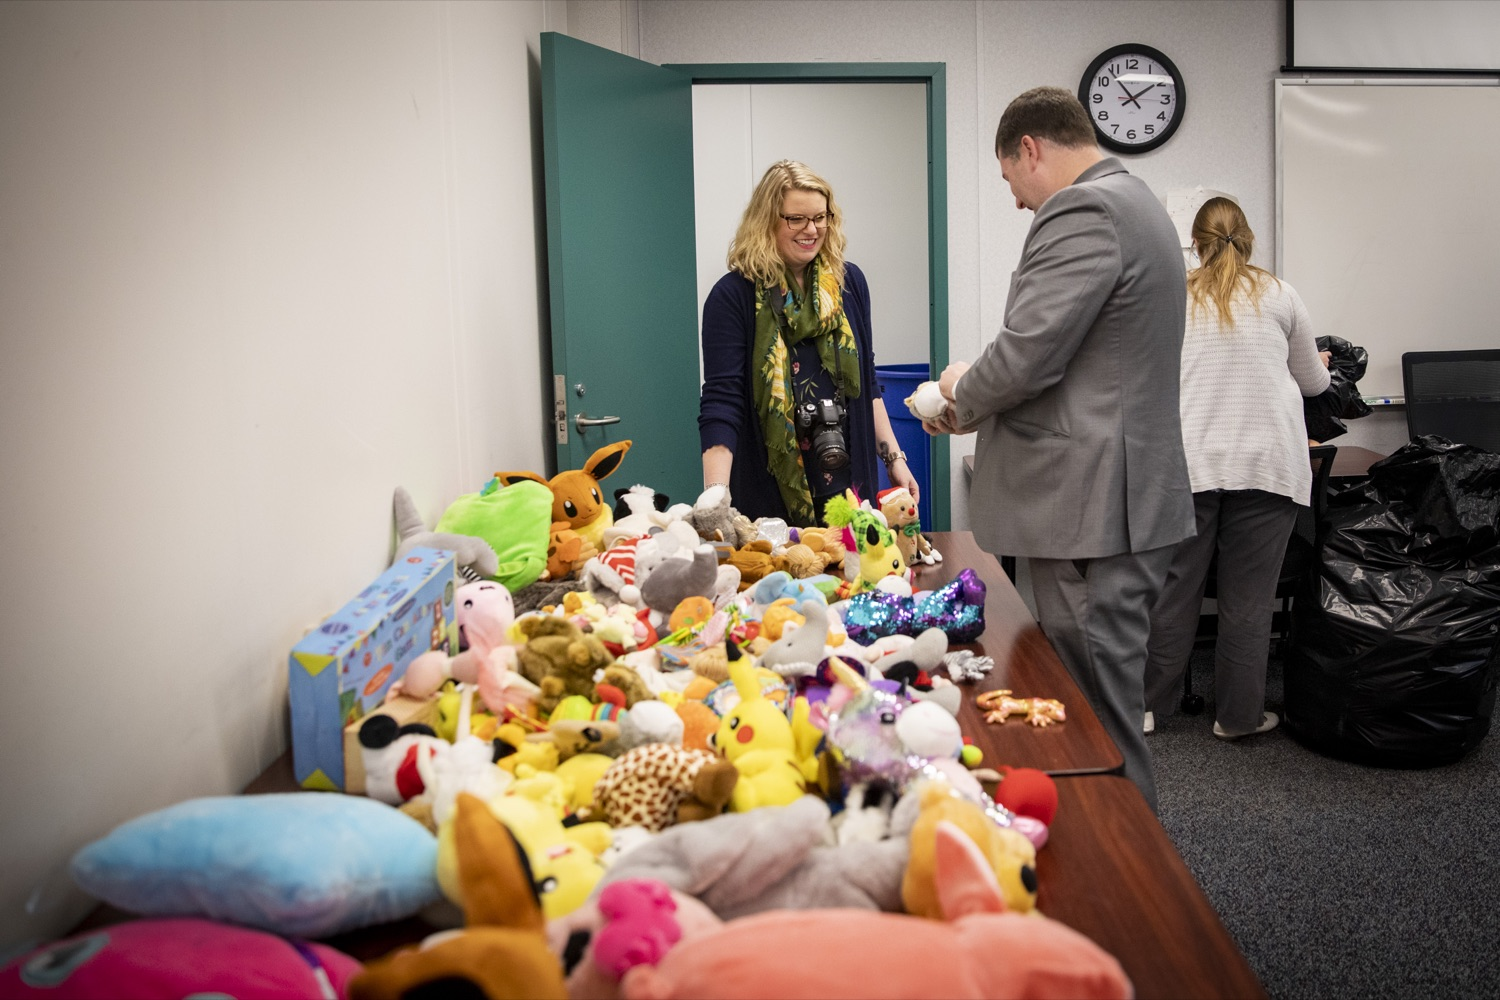 """<a href=""""https://filesource.wostreaming.net/commonwealthofpa/photo/17589_LandI_TOY_DONATION_CZ_01.JPG"""" target=""""_blank"""">⇣Download Photo<br></a>Employees from the Department of Labor and Industry gather 900 toys for donation in Harrisburg on November 14, 2019. These toys passed safety inspections and will be given to the commonwealths 30th annual Holiday Wish program gift drive."""